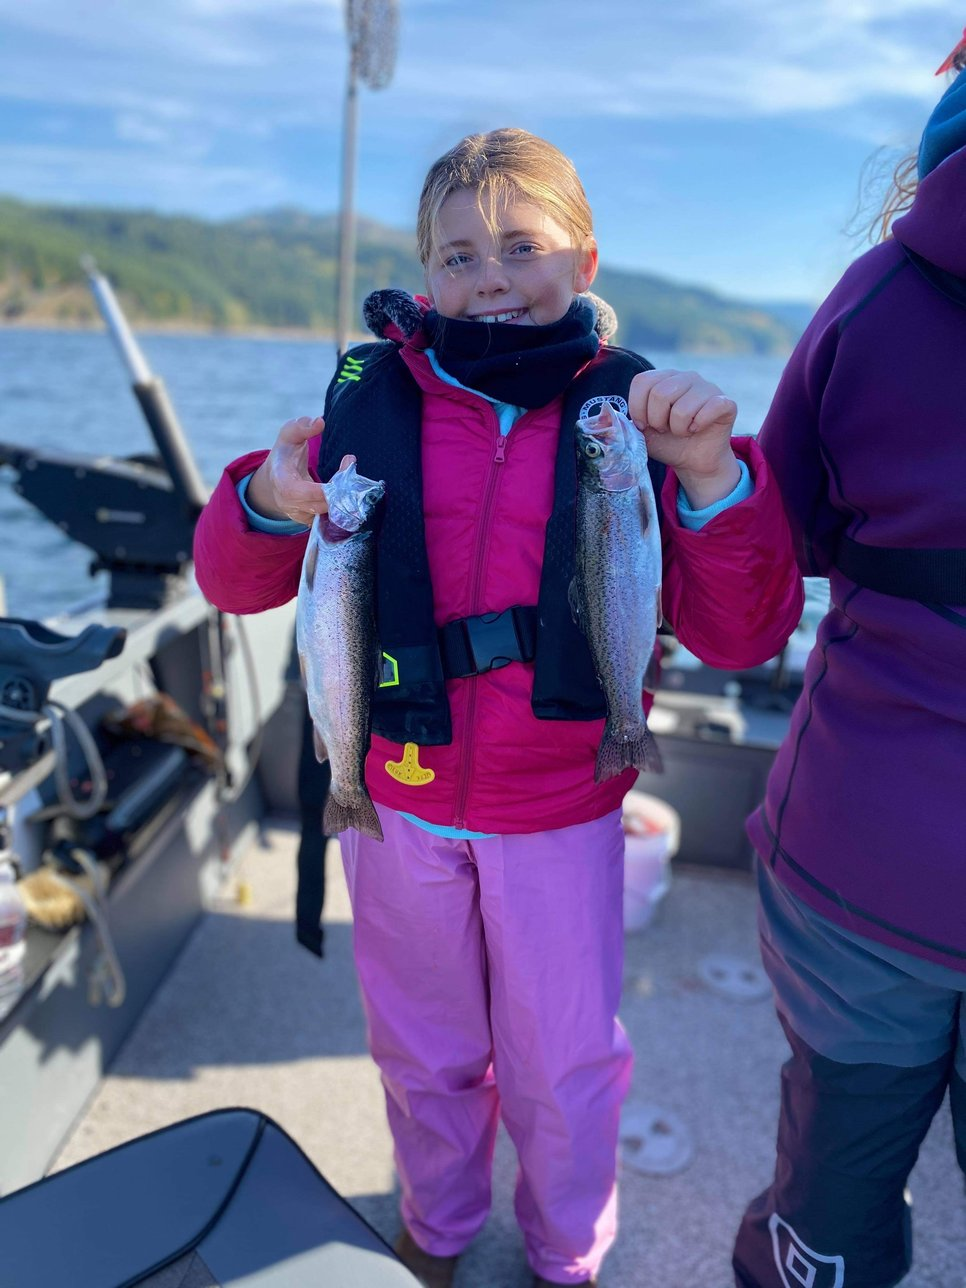 Kokanee & Trout Tackle, Micro Hoochies, Squid skirts, dodgers